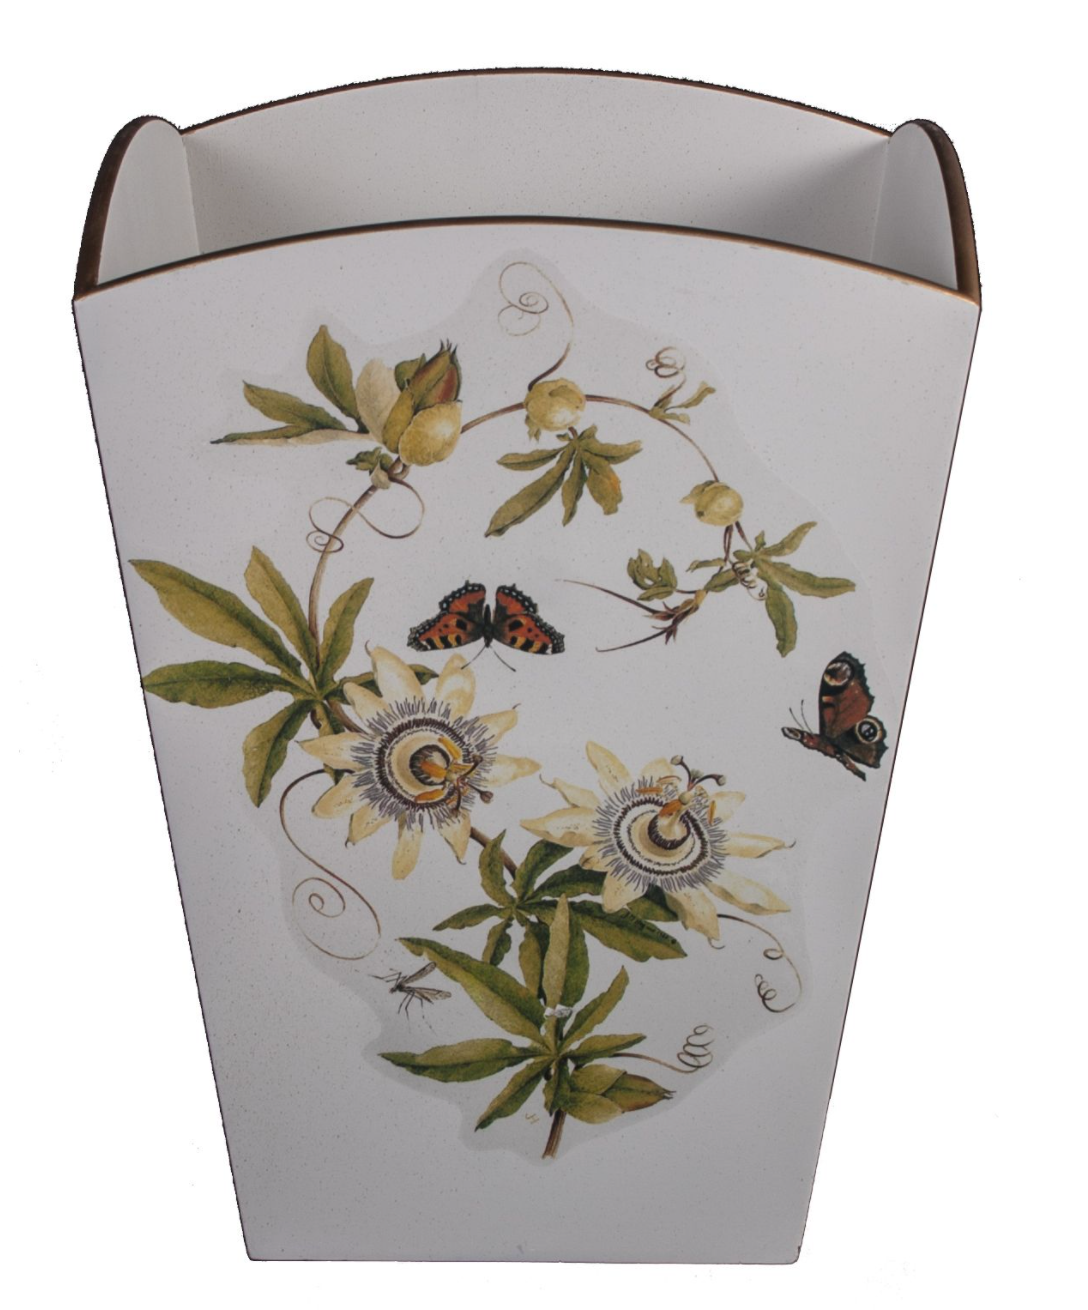 Square Wooden Waste Paper Bin: Passion Flower